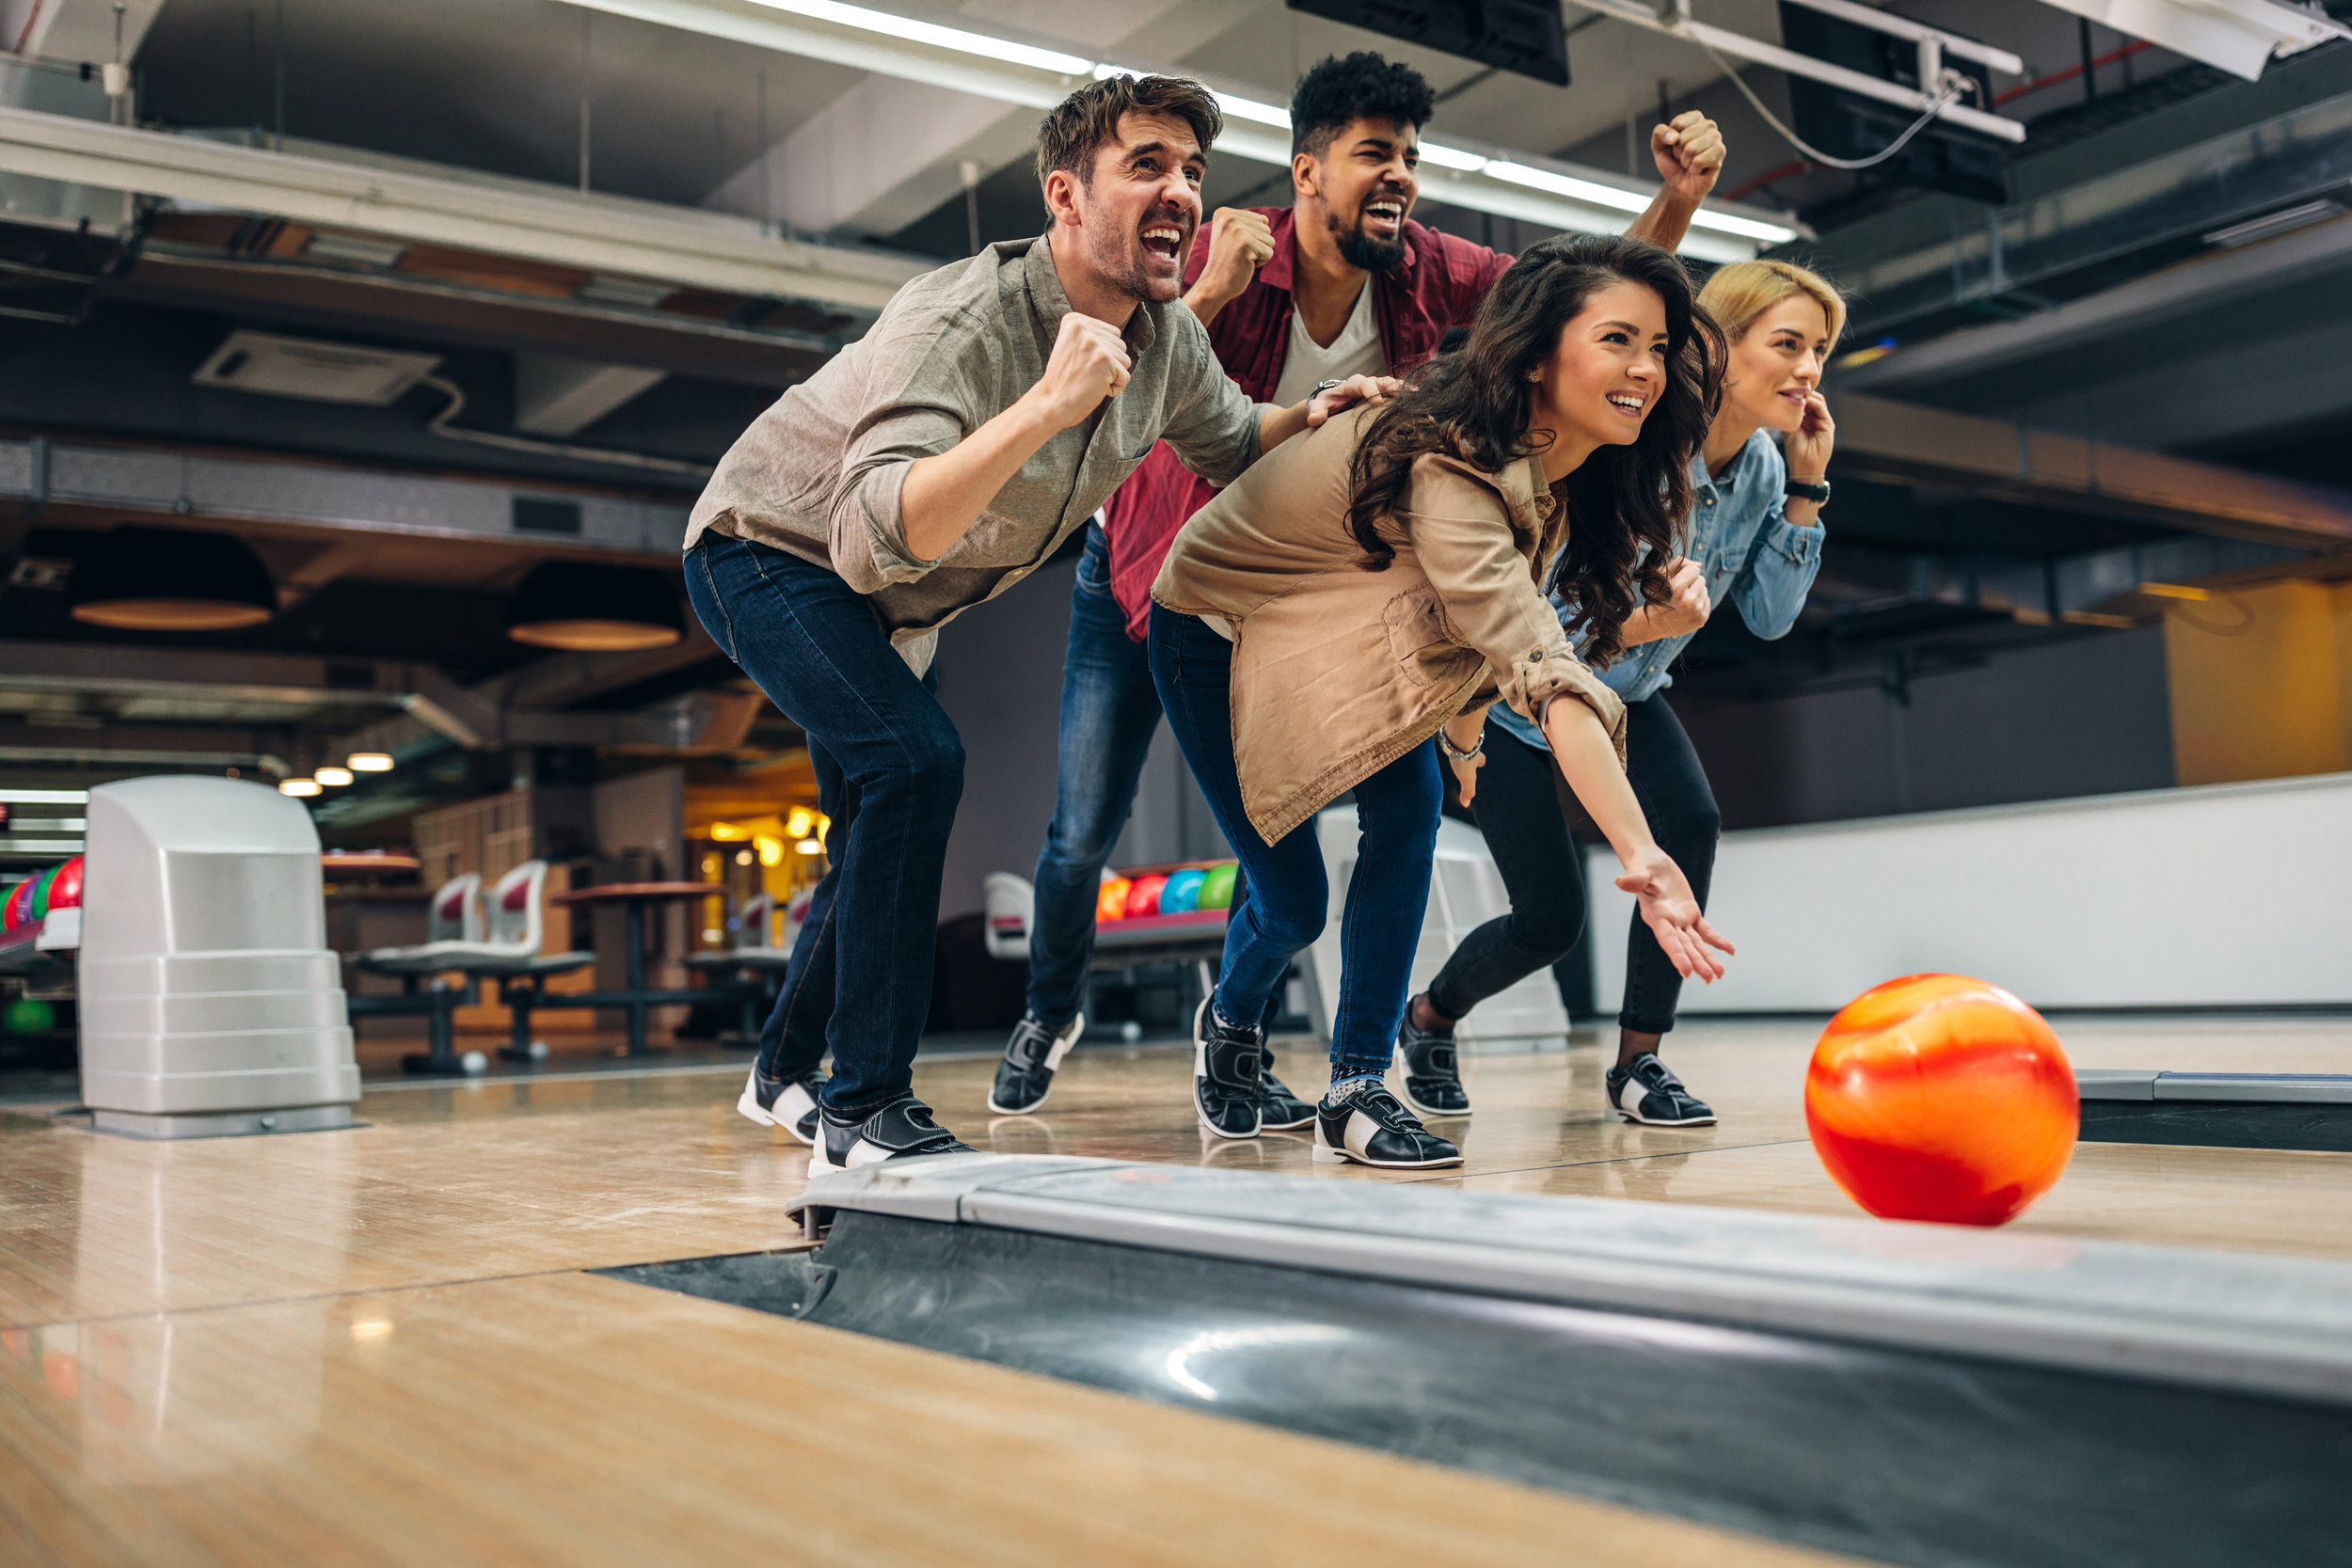 Group Bowling_GettyImages-948127020.jpg